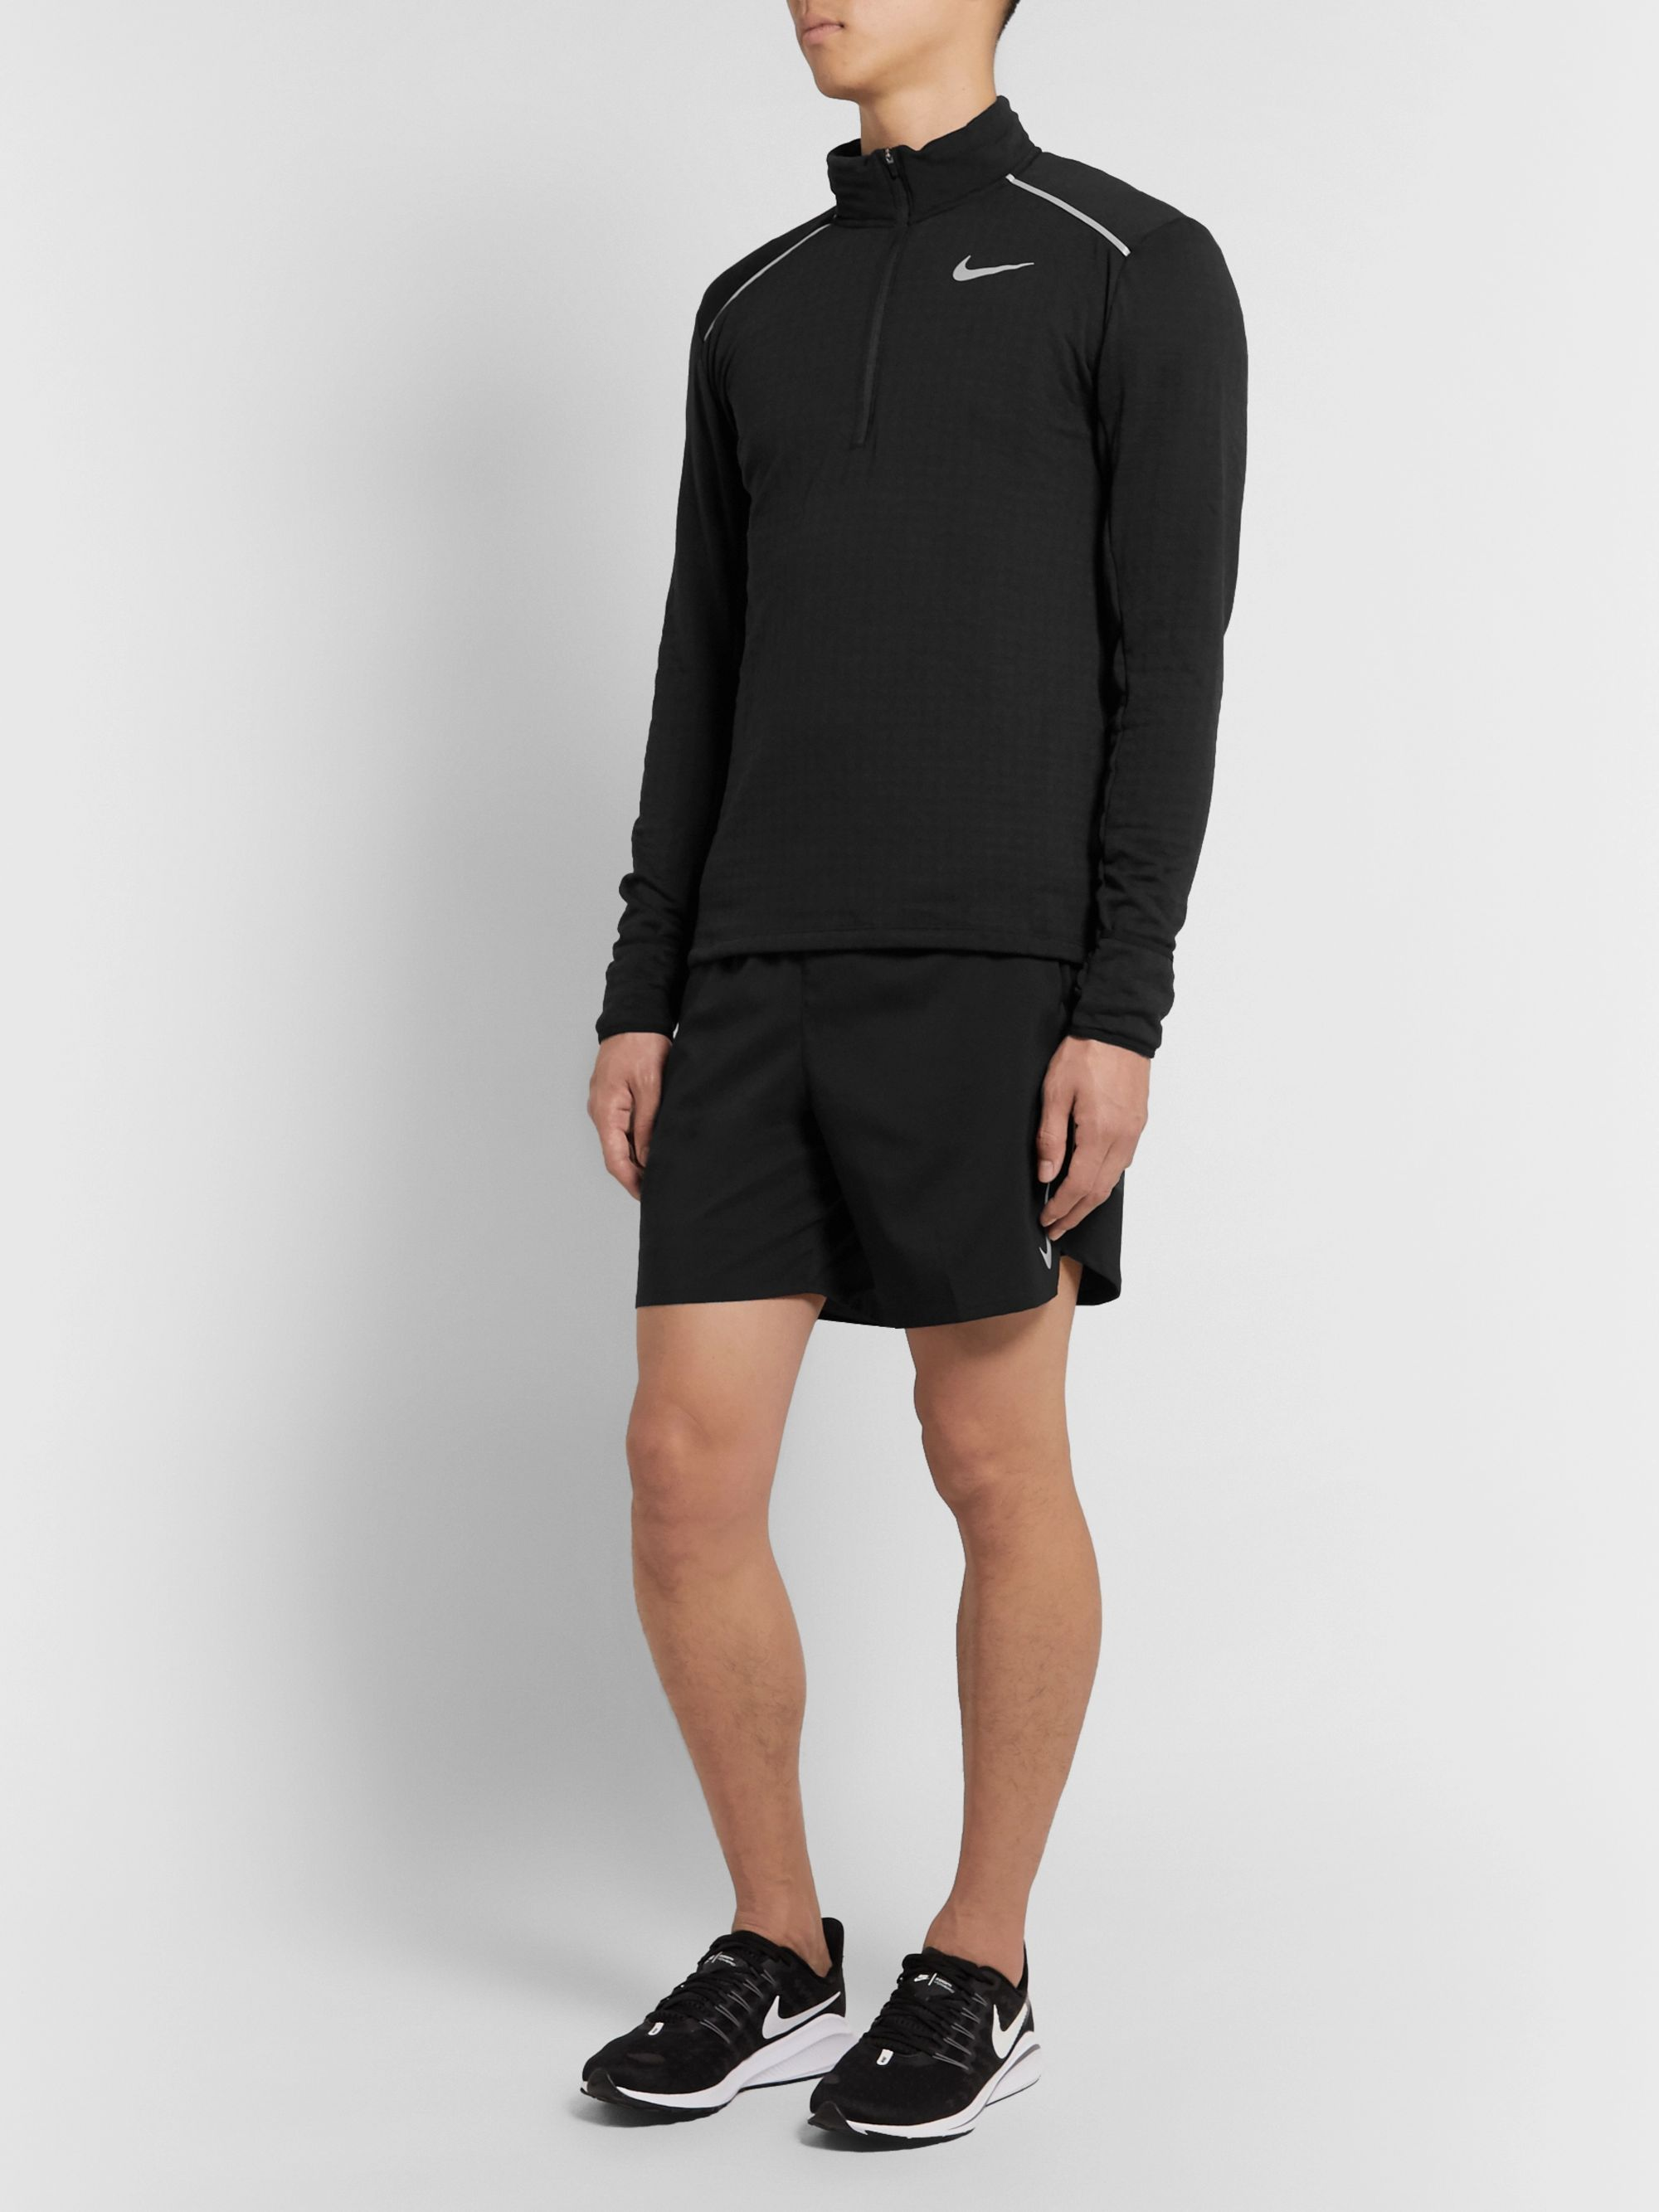 Nike Running Therma Sphere Element 3.0 Dri-Fit Half-Zip Top